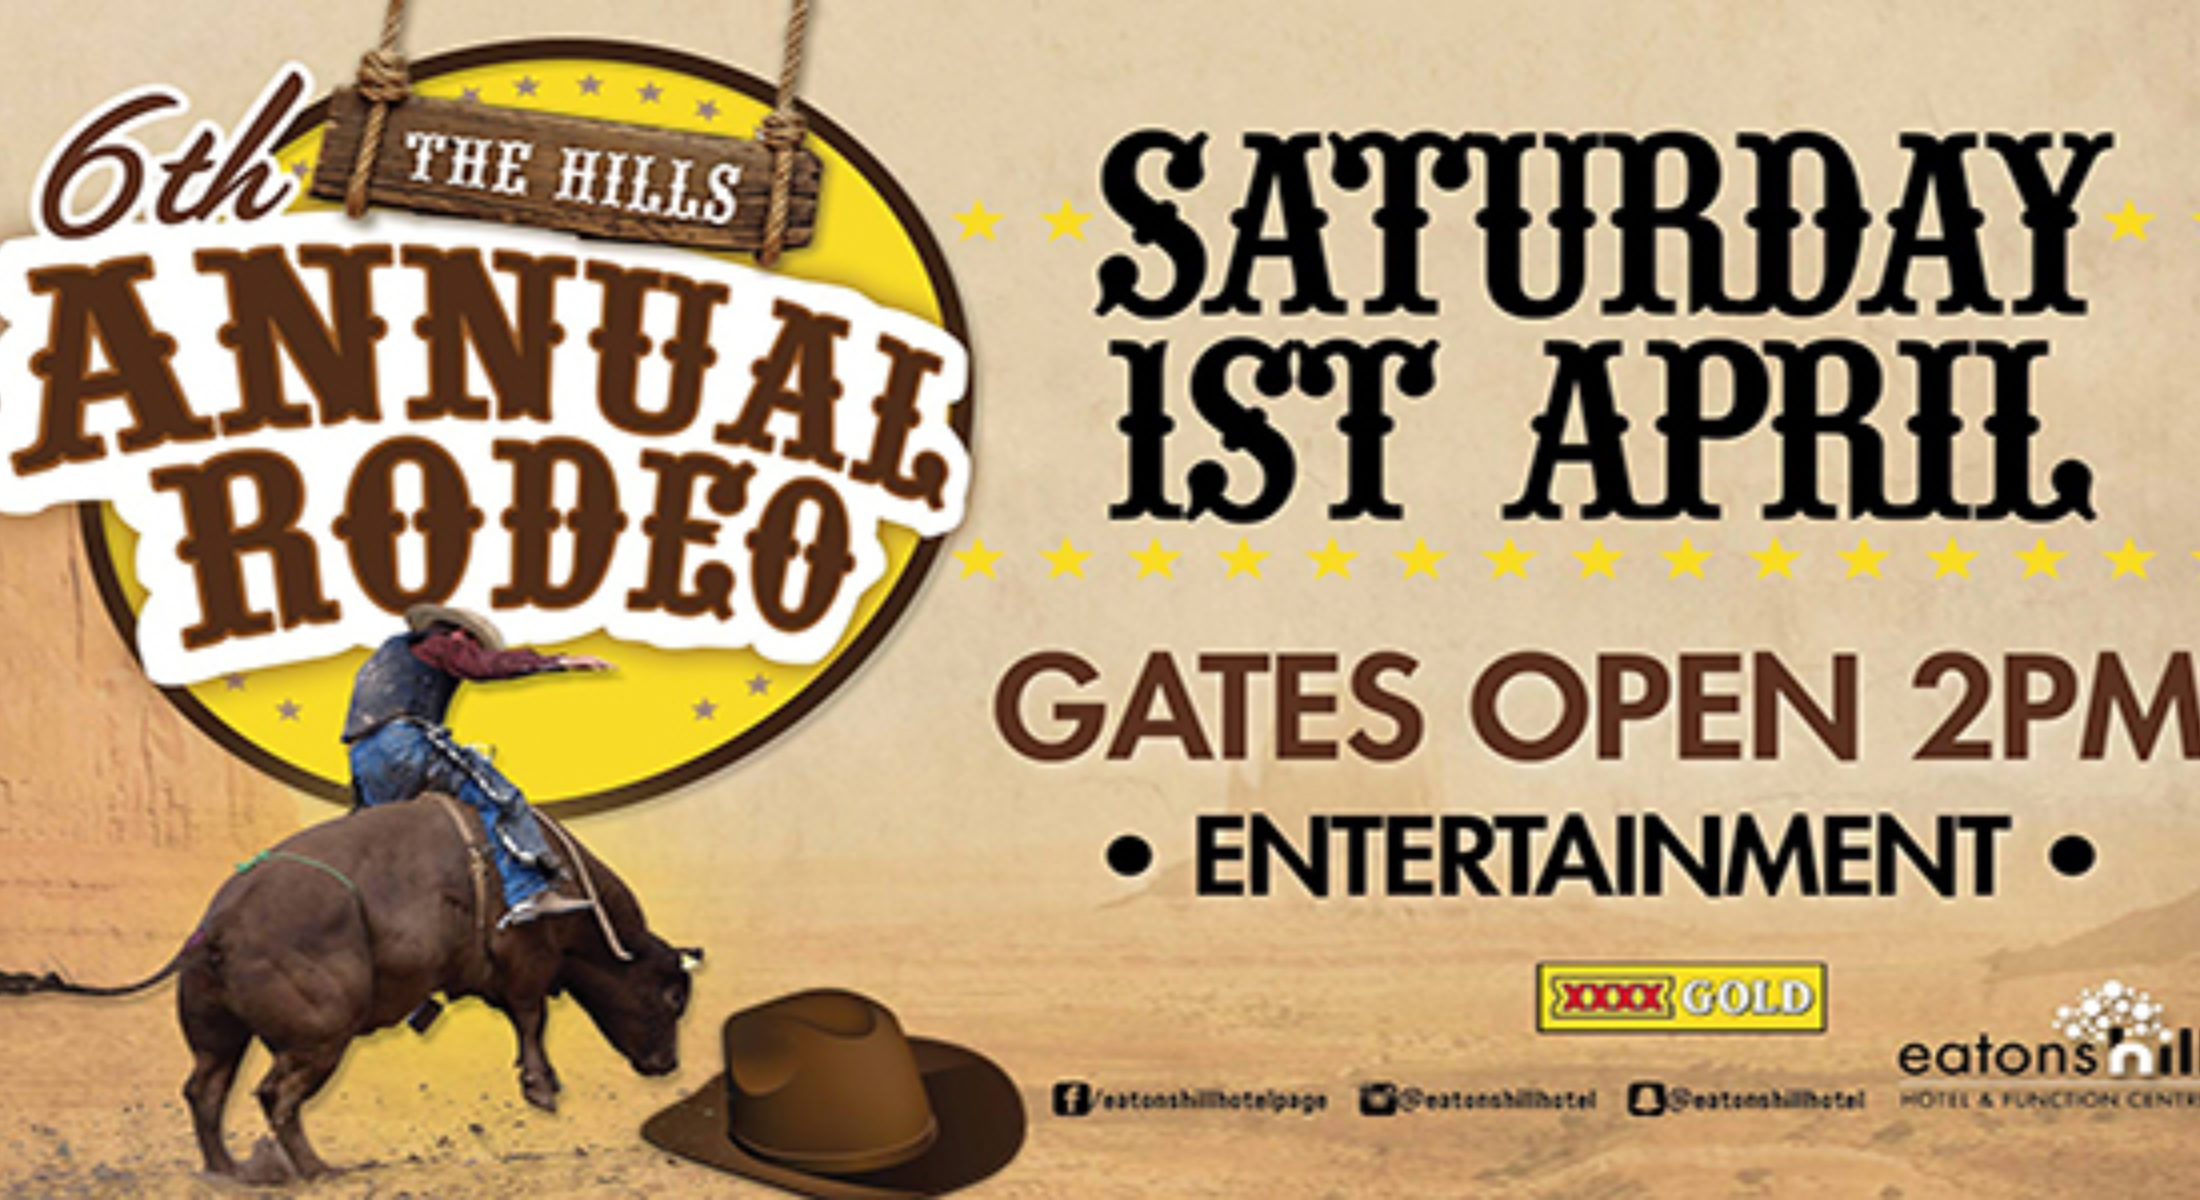 Eatons Hill Sixth Annual Rodeo Moreton Bay Region